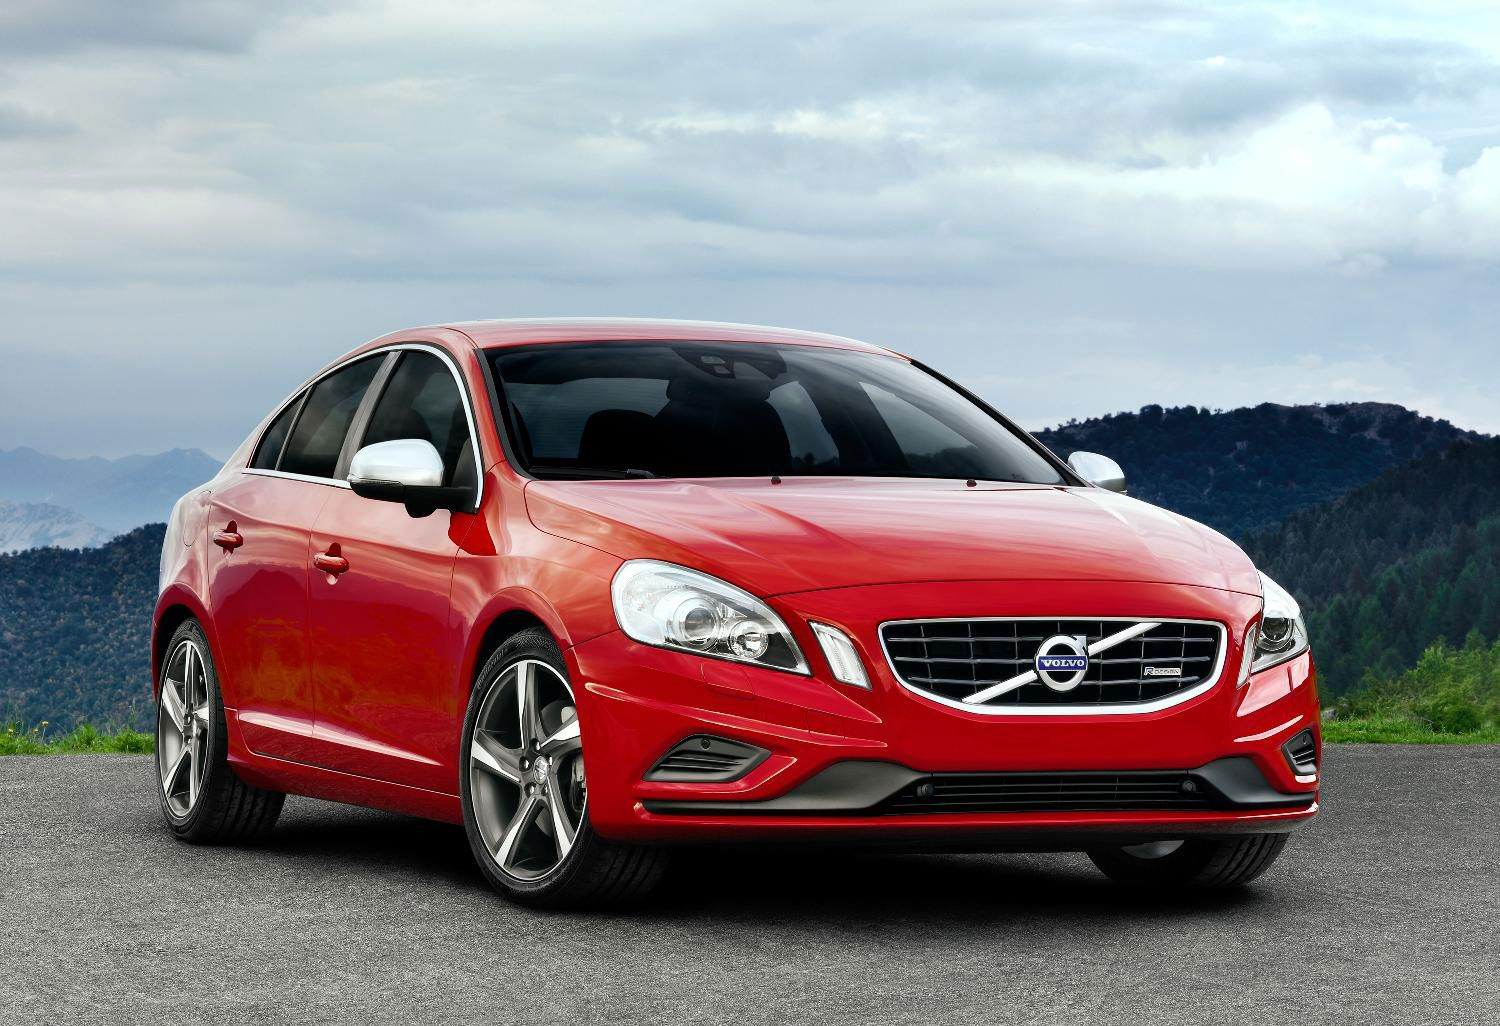 Volvo S 60 Car And Truck Buying Reviews News And More Jalopnik Volvo S60 Volvo Volvo Cars